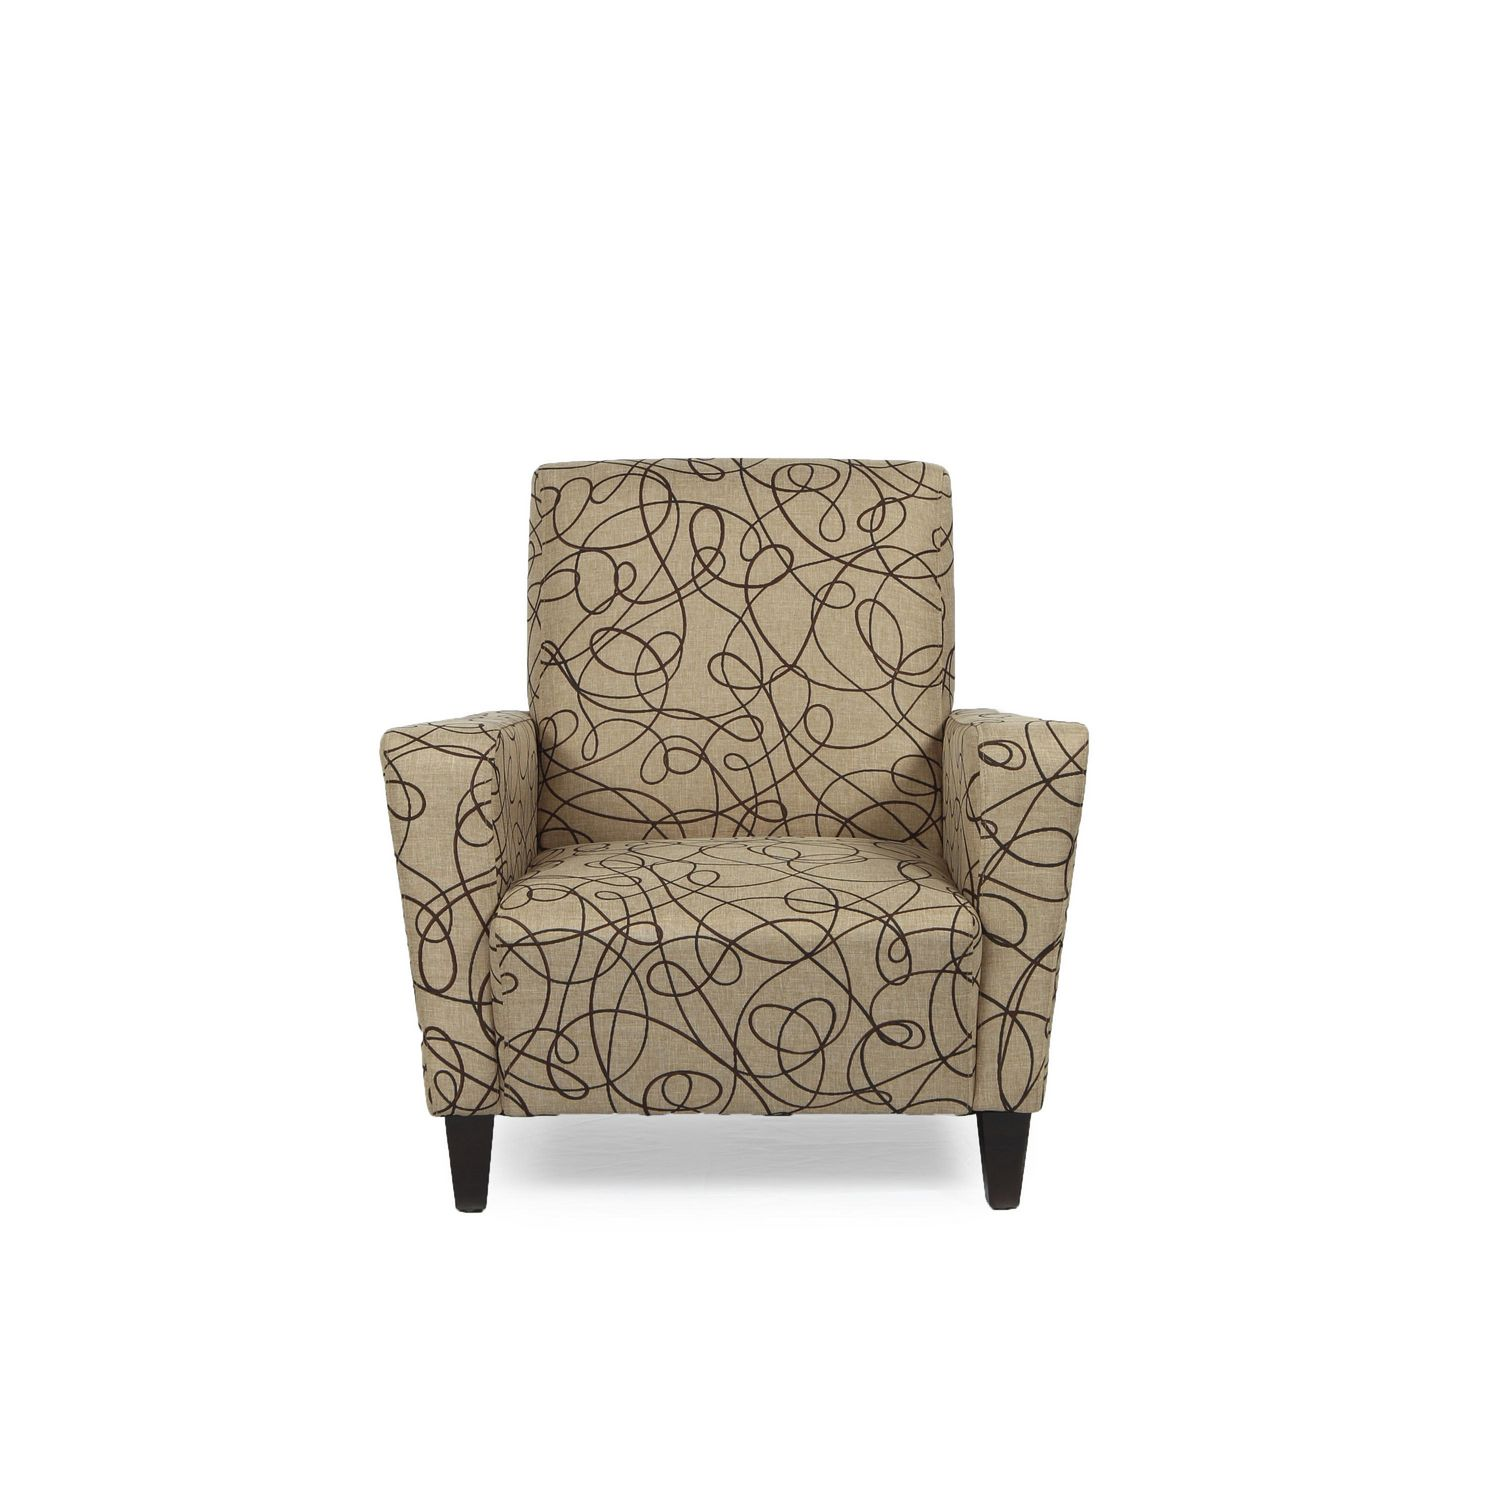 Living Room Chairs Walmart Buy Living Room Chairs Online Walmart Canada